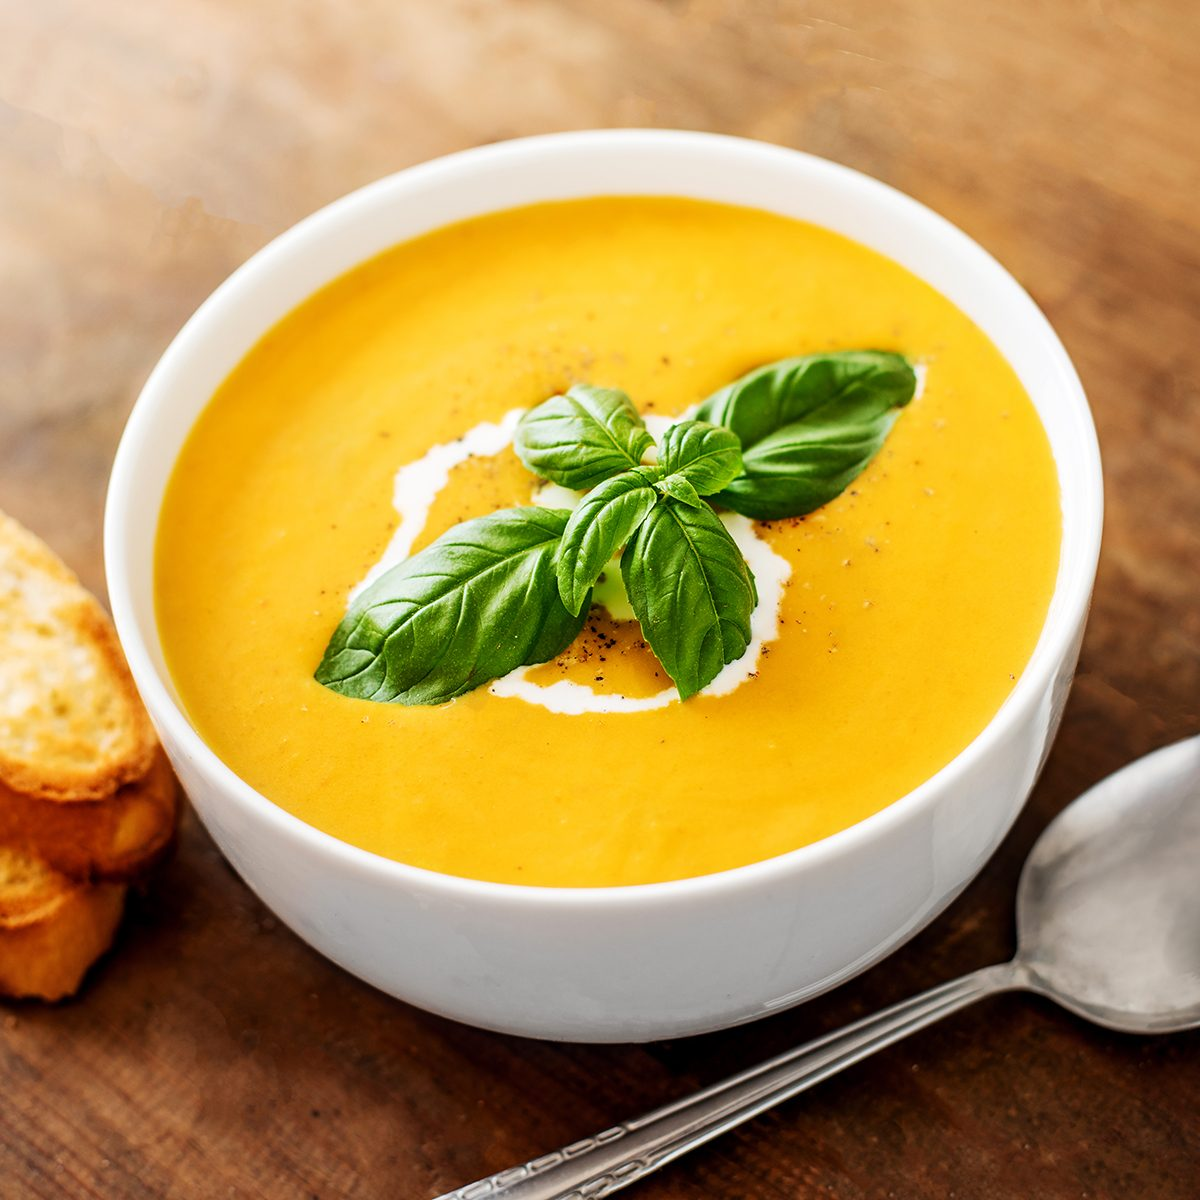 Bowl of squash soup with basil leaf on wood table.